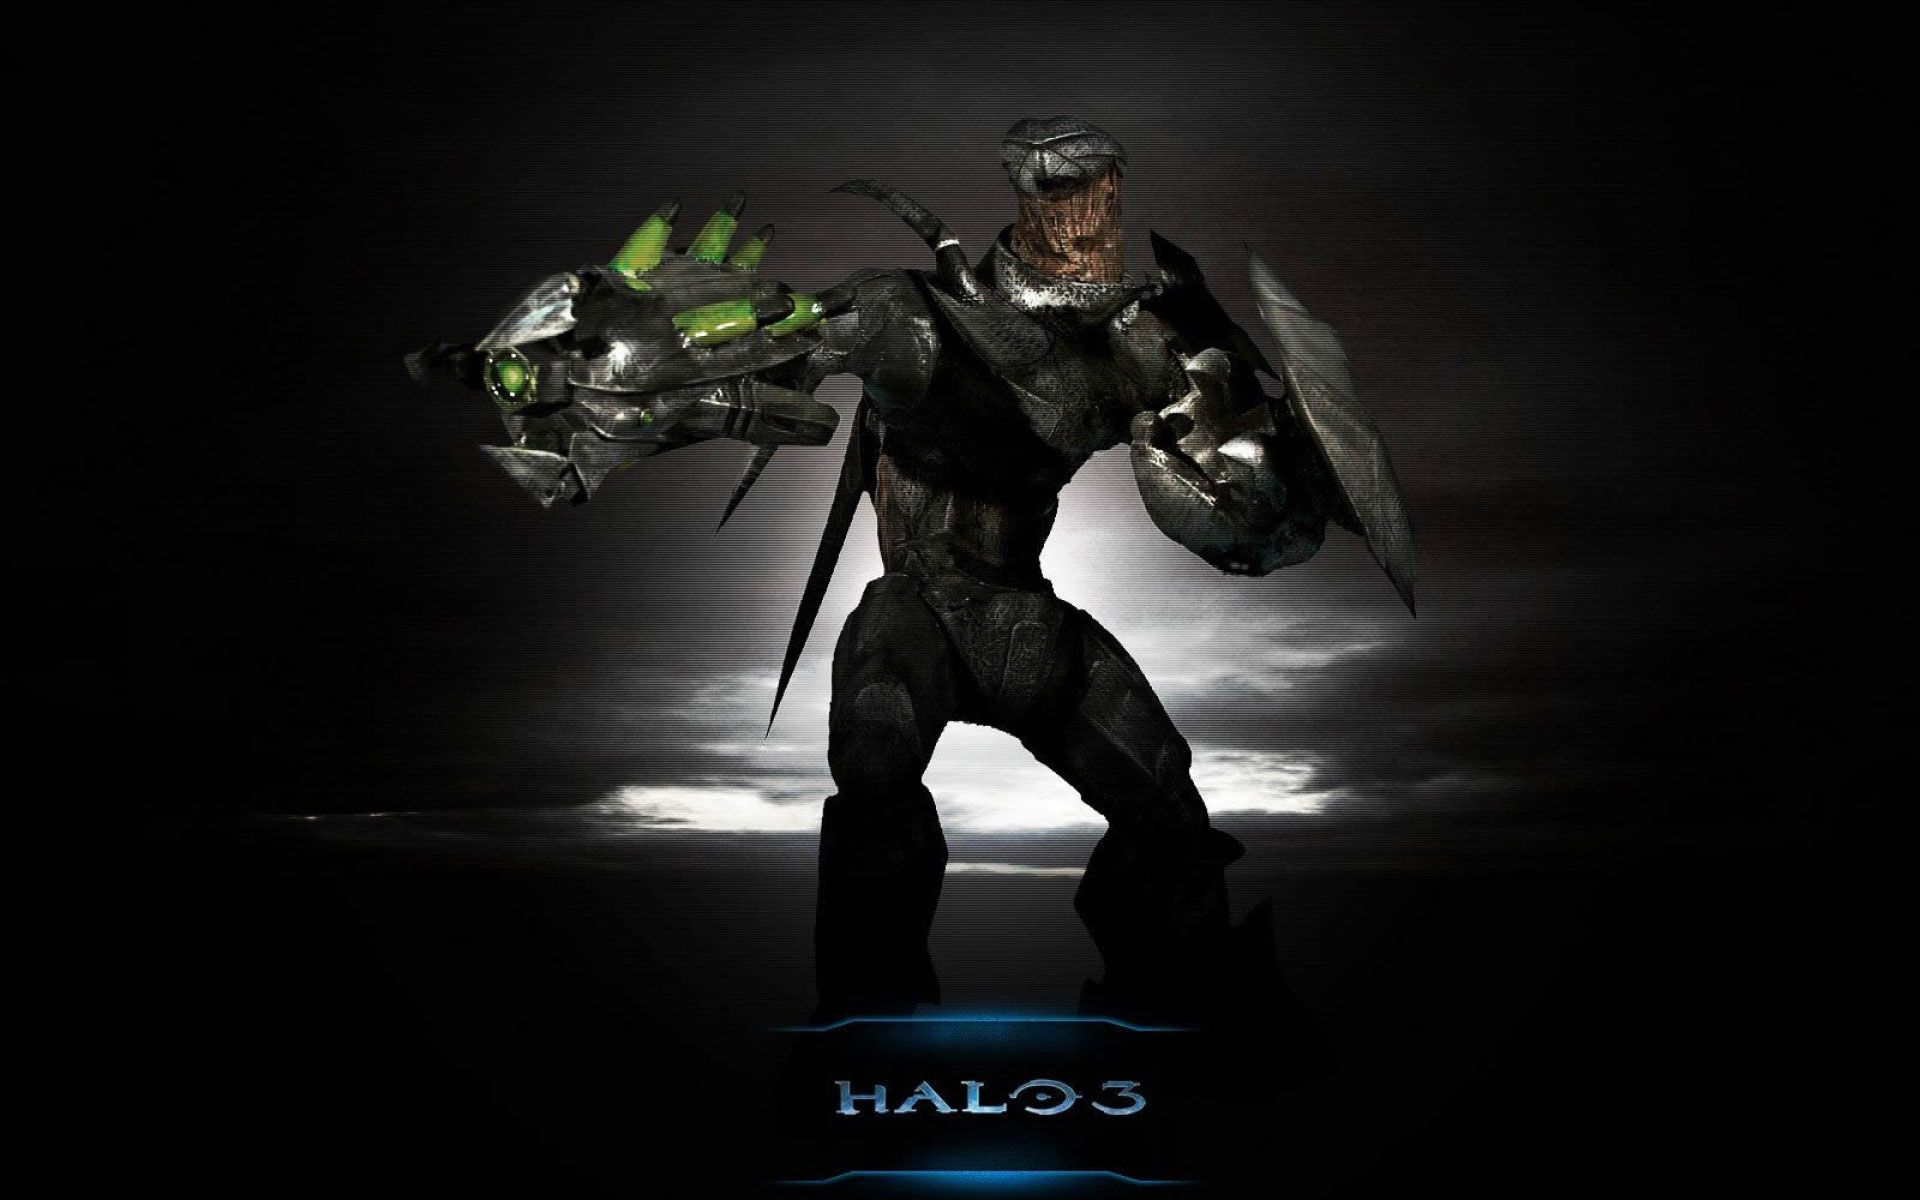 halo-3-hd-wallpapers-in-hd1 | hd wallpapers | pinterest | hd wallpaper